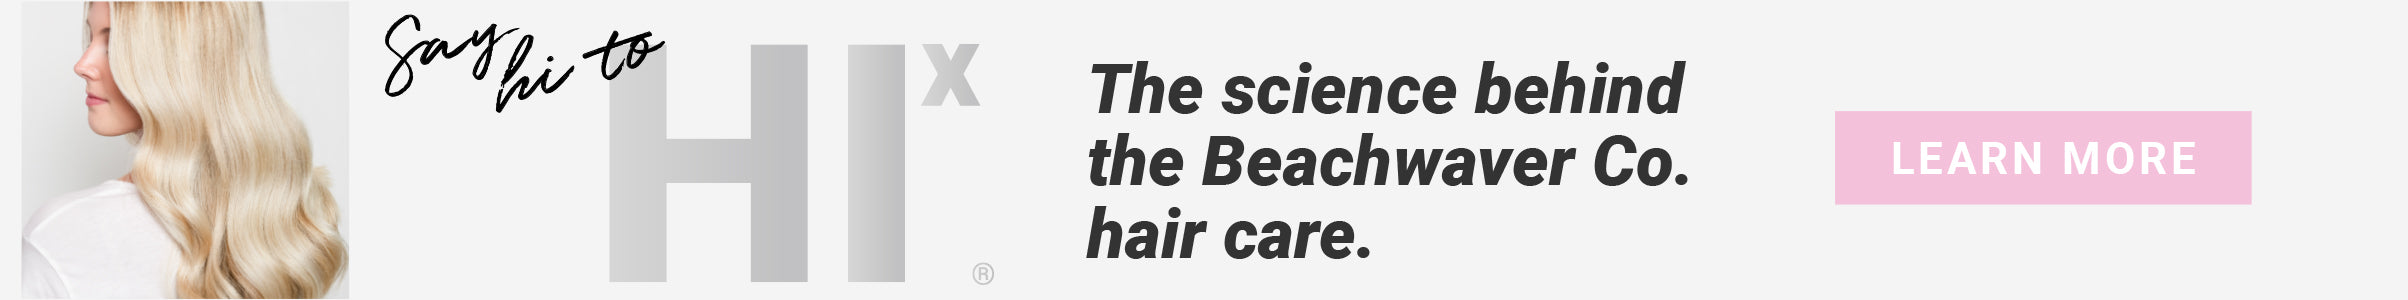 Say hi to HI X! The science behind Beachwaver Co. hair care. Learn More.